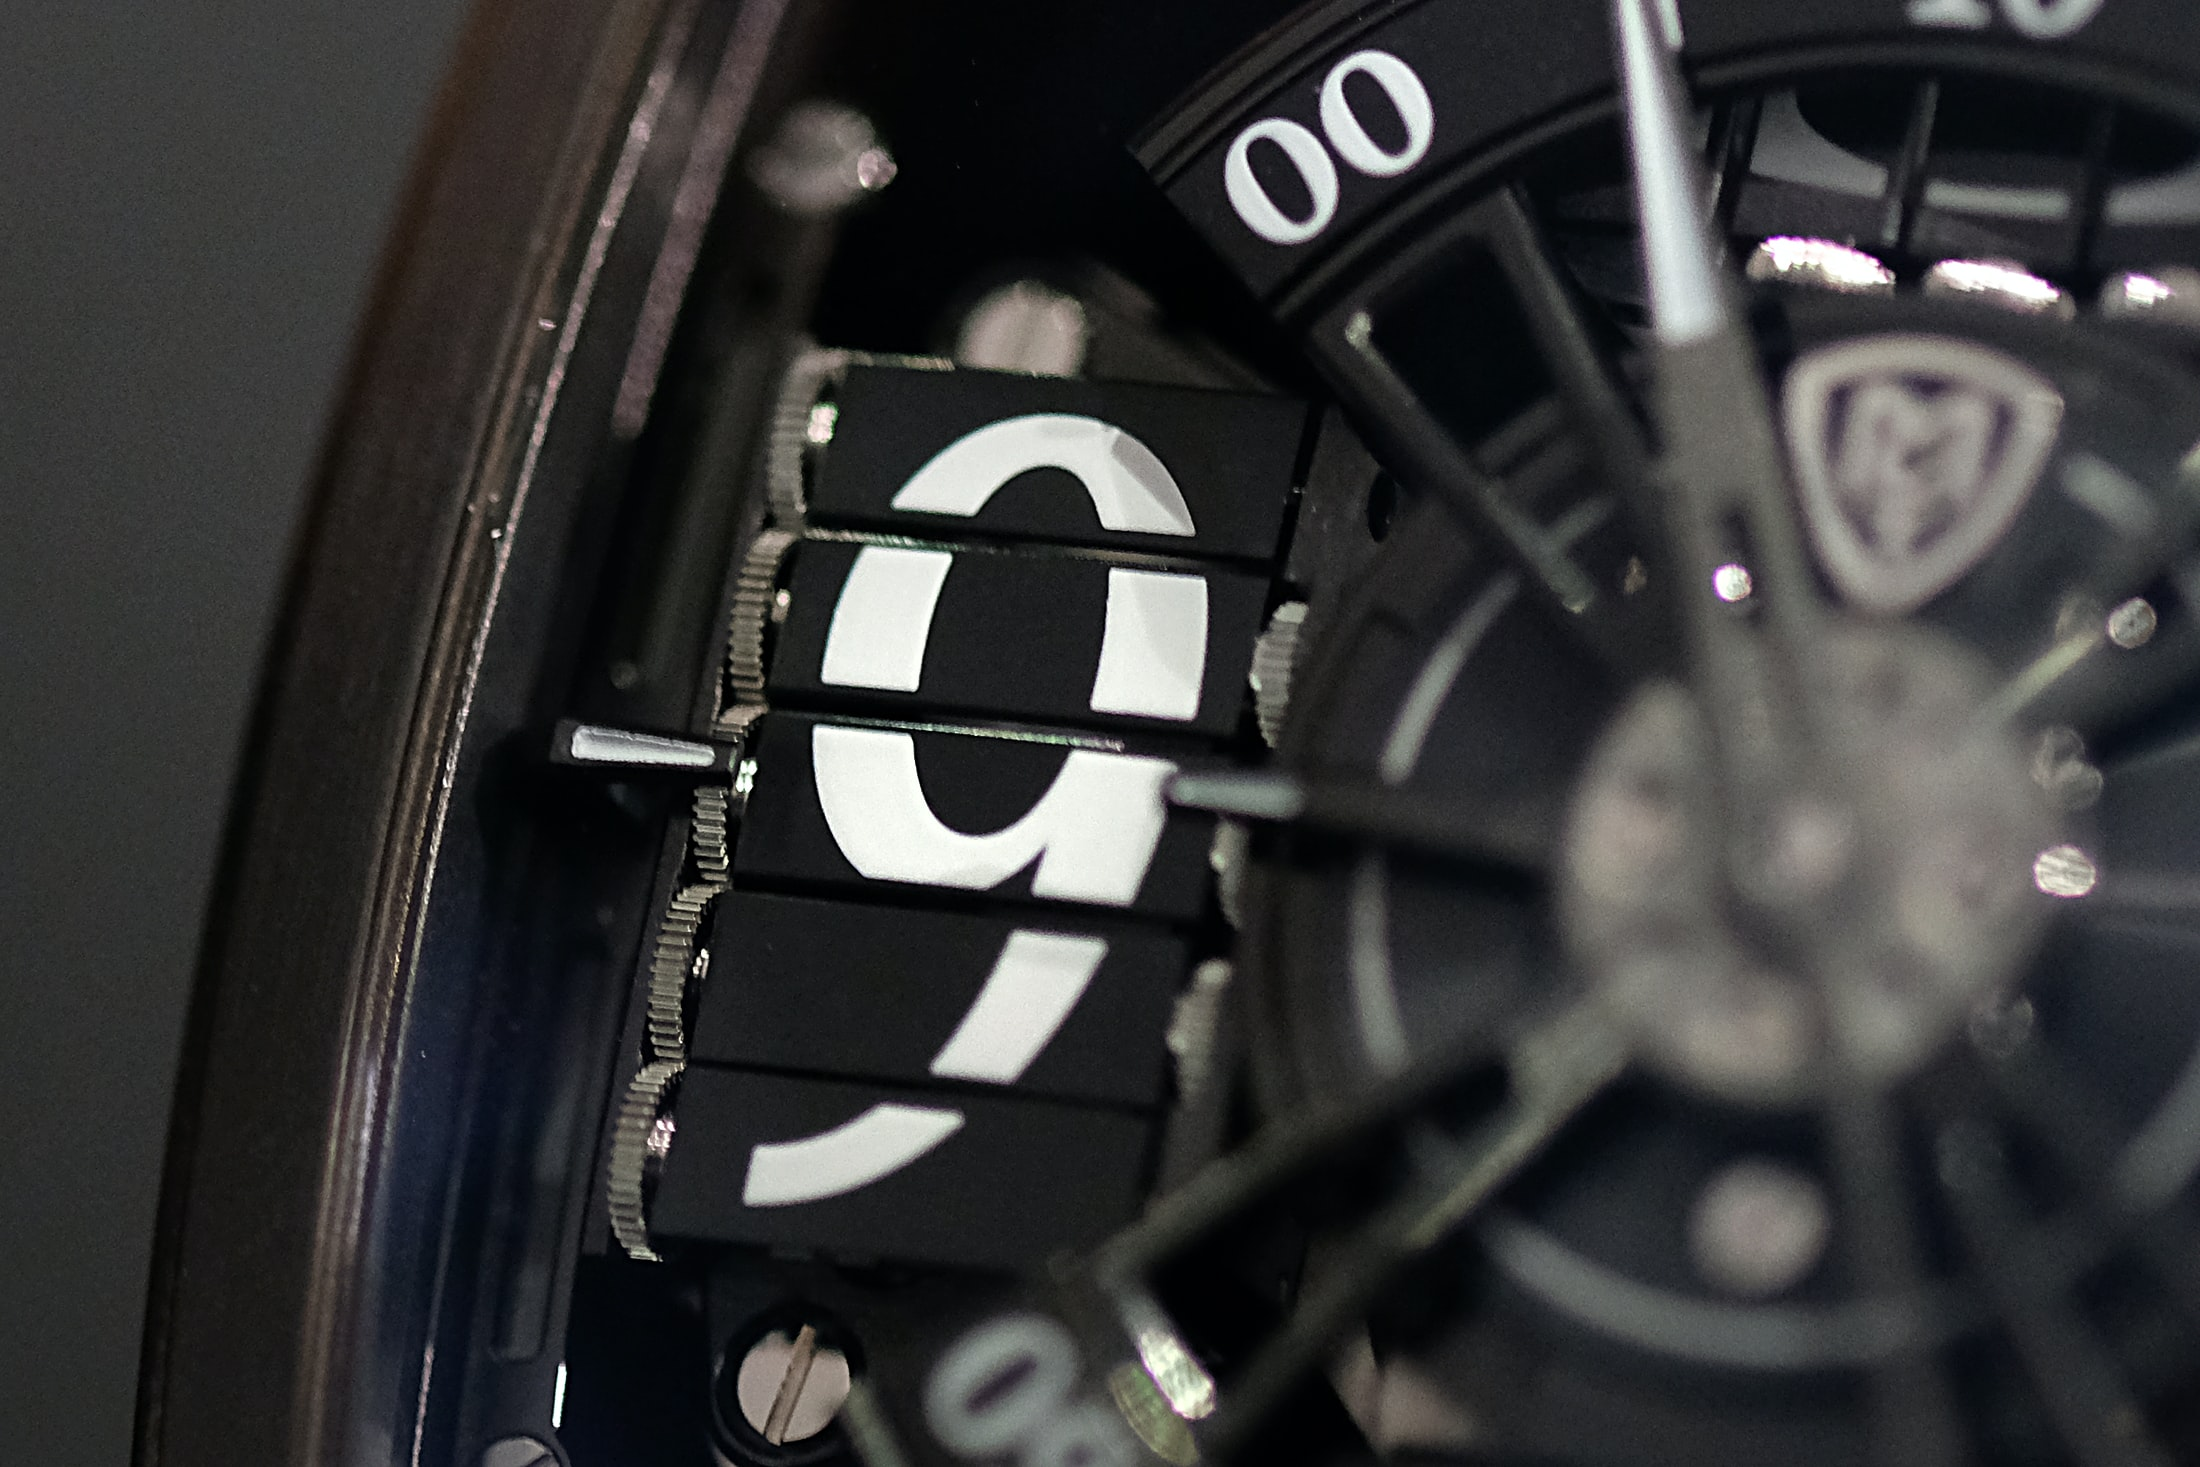 mct sequential one numbers Hands-On: The MCT Sequential One 110 Evo Vantablack, The Darkest Watch Ever Made Hands-On: The MCT Sequential One 110 Evo Vantablack, The Darkest Watch Ever Made vantablack 02